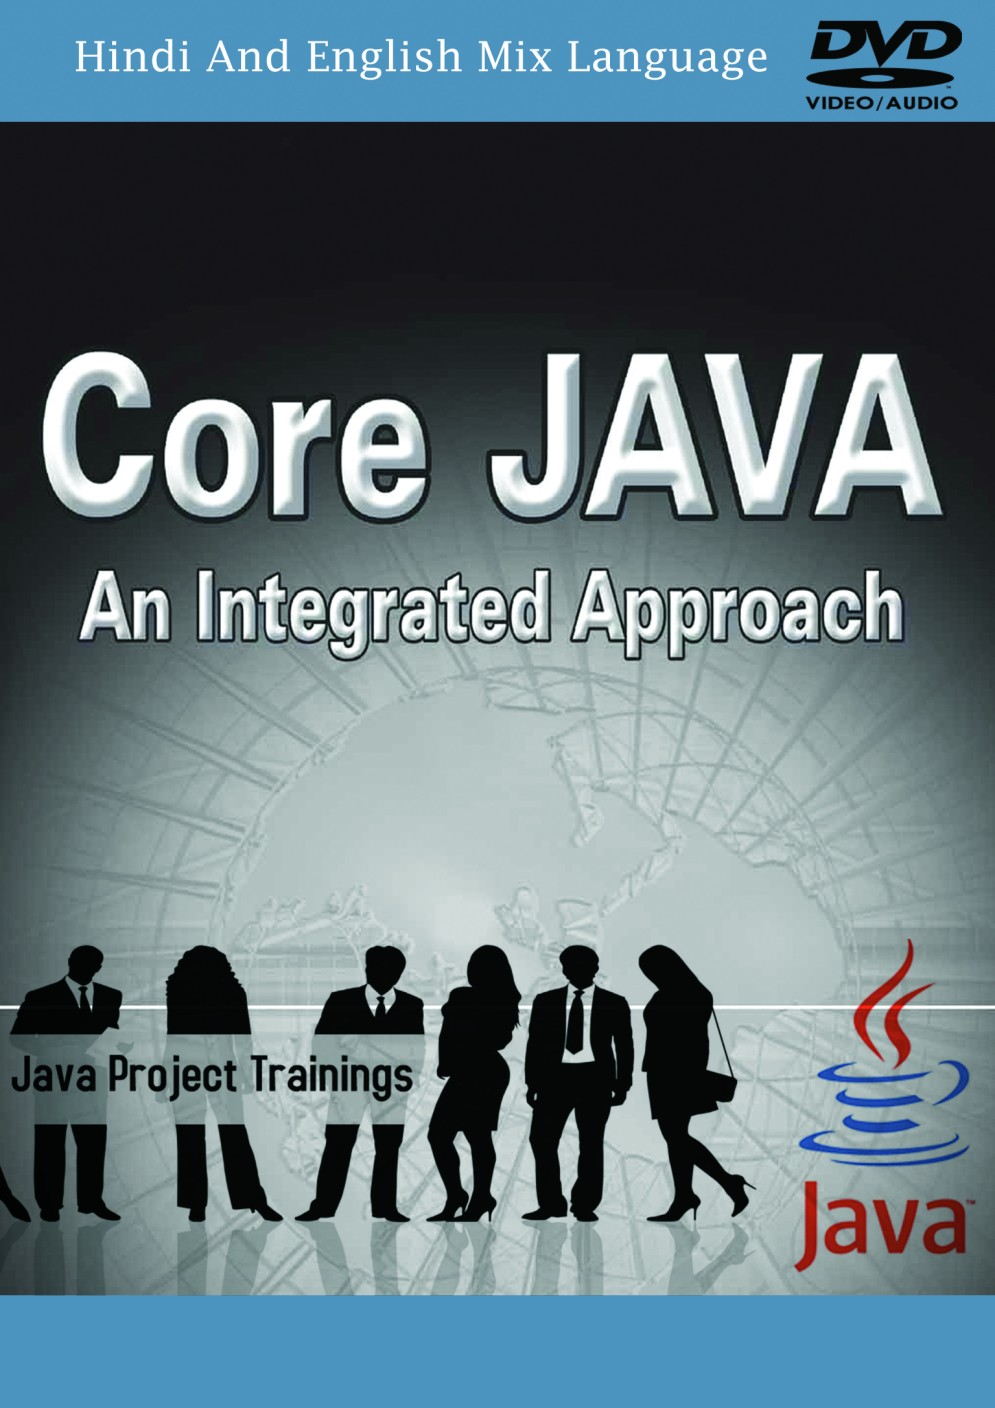 Core java tutorials image collections any tutorial examples lsoit core java programming tutorials dvd lsoit flipkart lsoit core java programming tutorials dvd add to baditri Choice Image